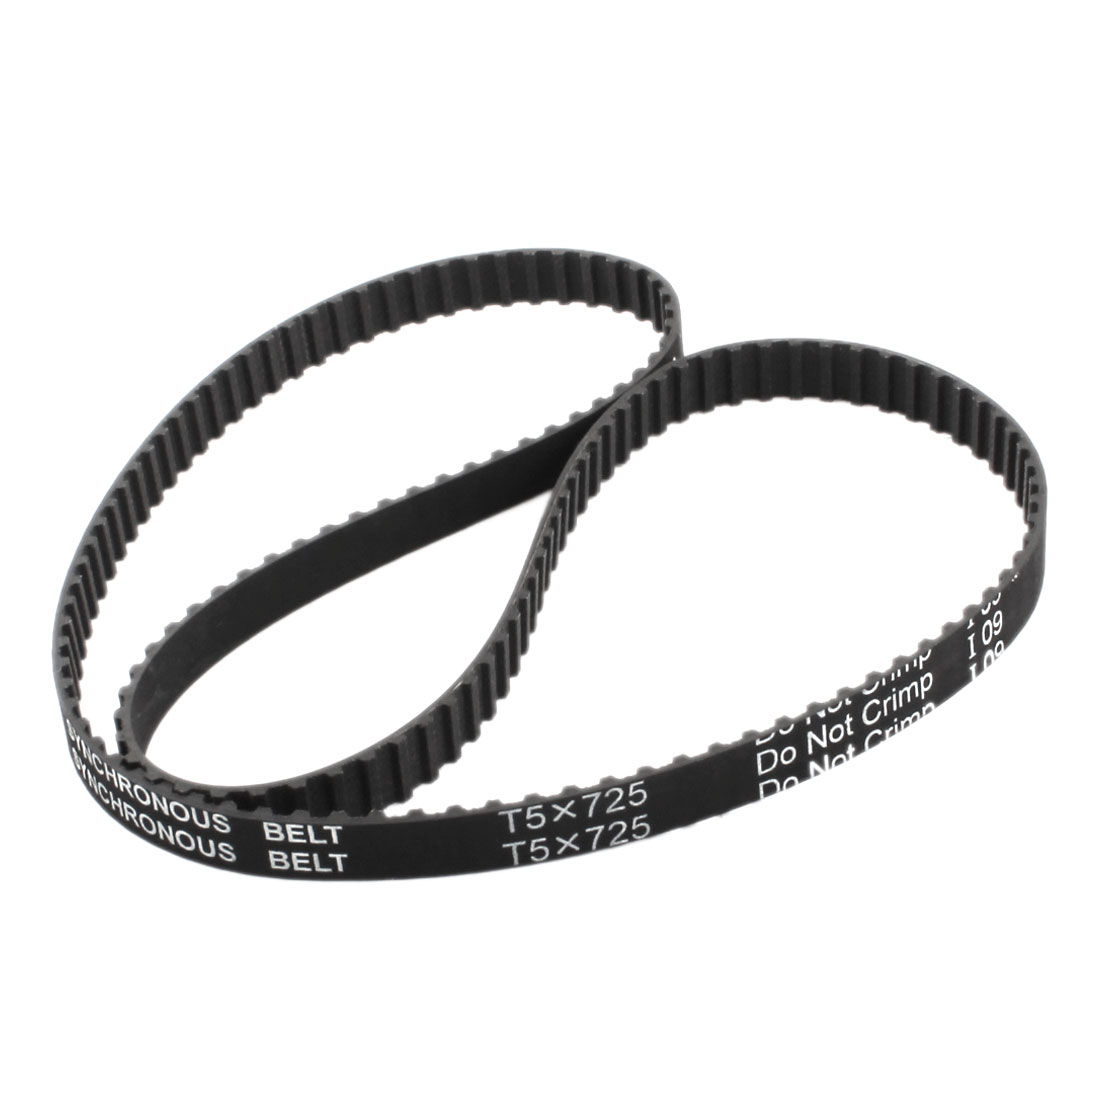 T5x725 145-Tooth 10mm Width Single Side Black Rubber Groove Industrial CNC Machine Synchronous Timing Belt 725mm for 3D Printer